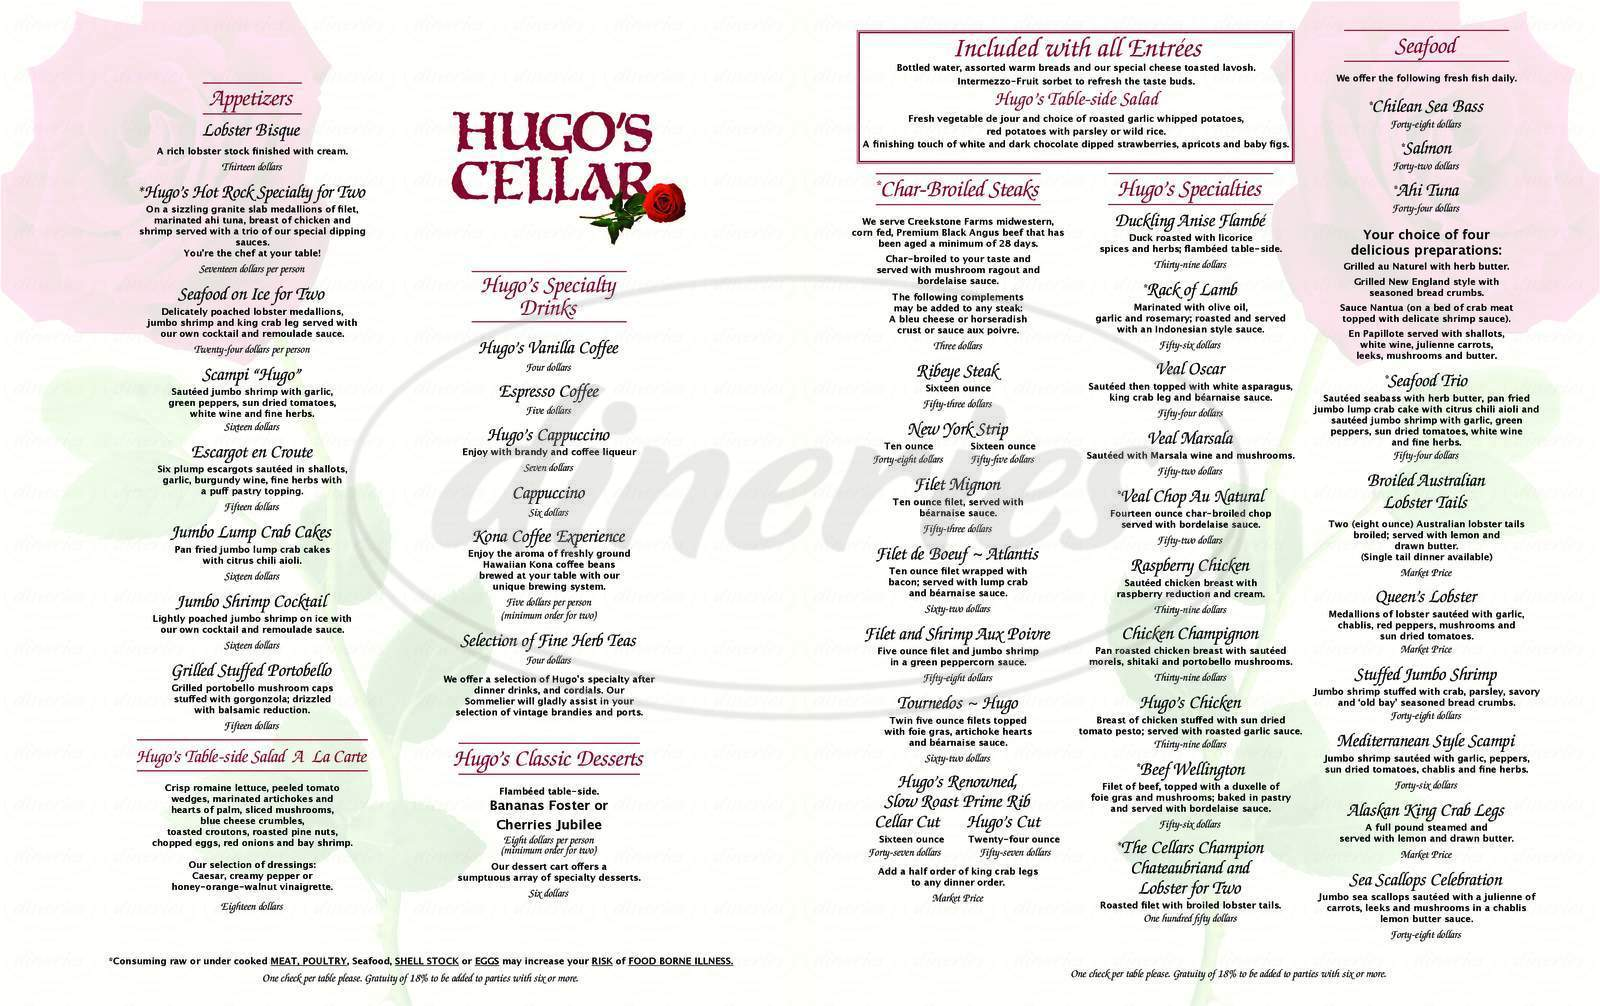 menu for Hugo's Cellar